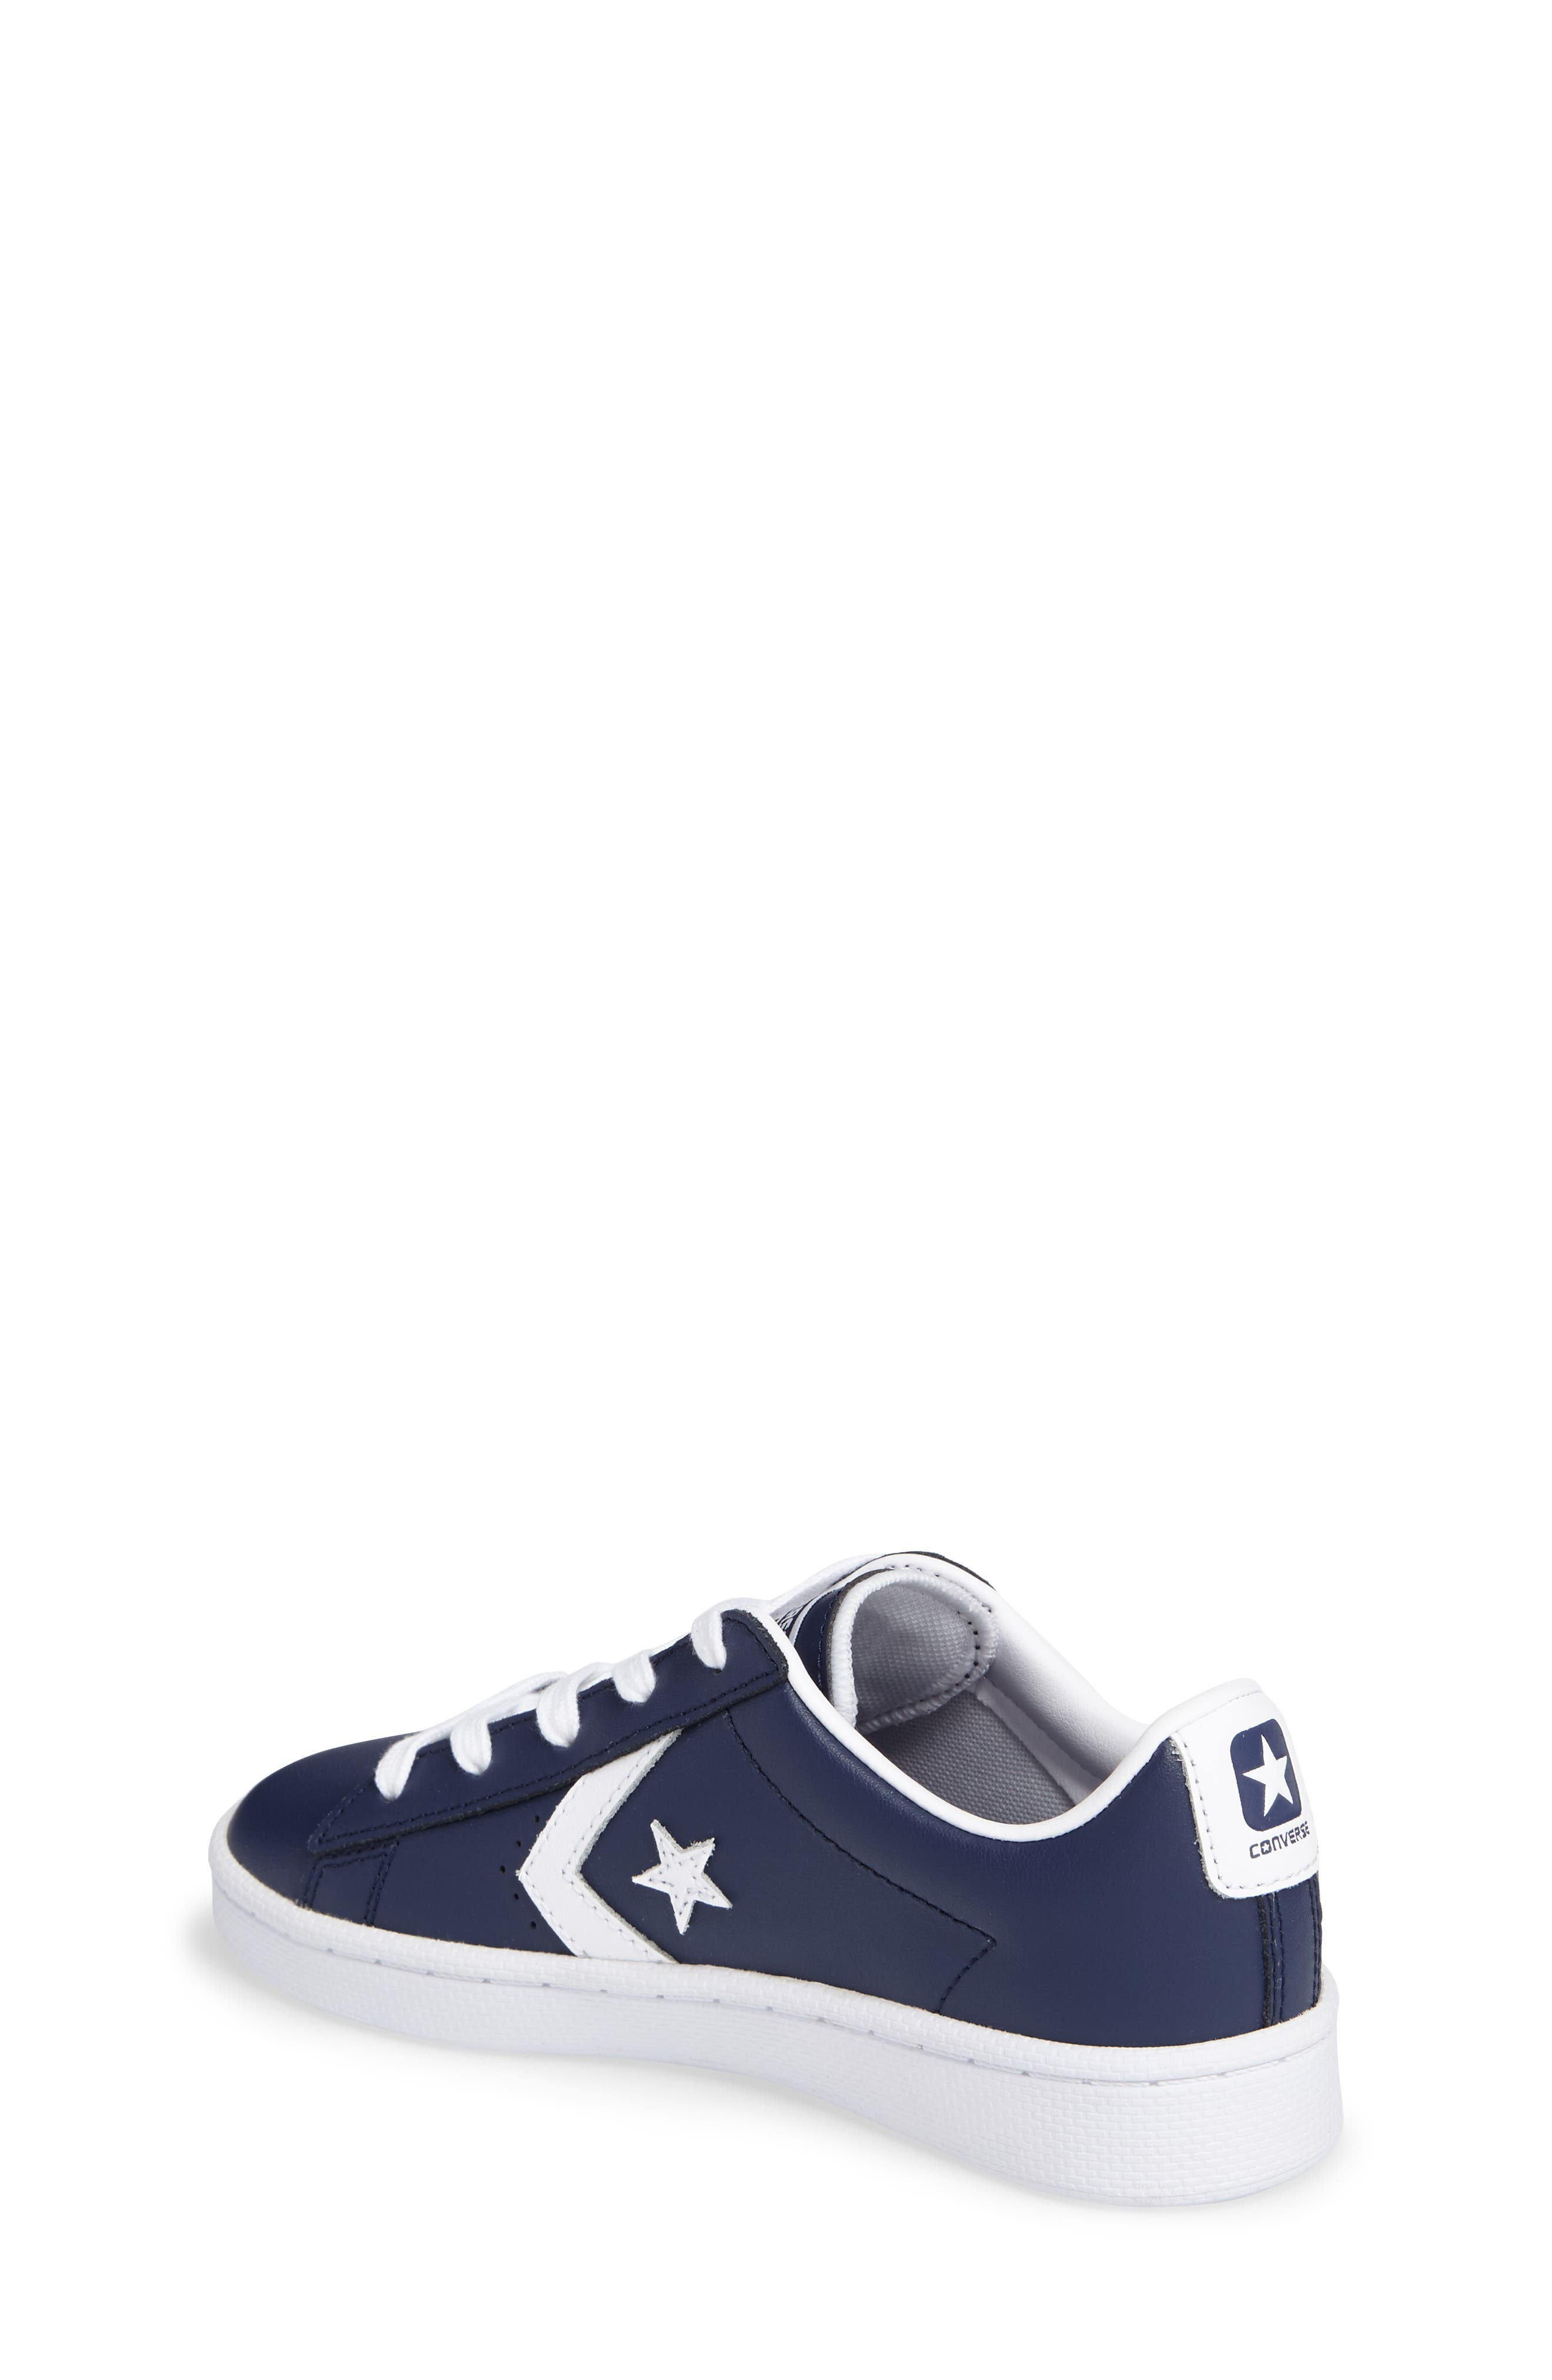 Alternate Image 3  - Converse All Star® Pro Leather Low Top Sneaker (Toddler & Little Kid)